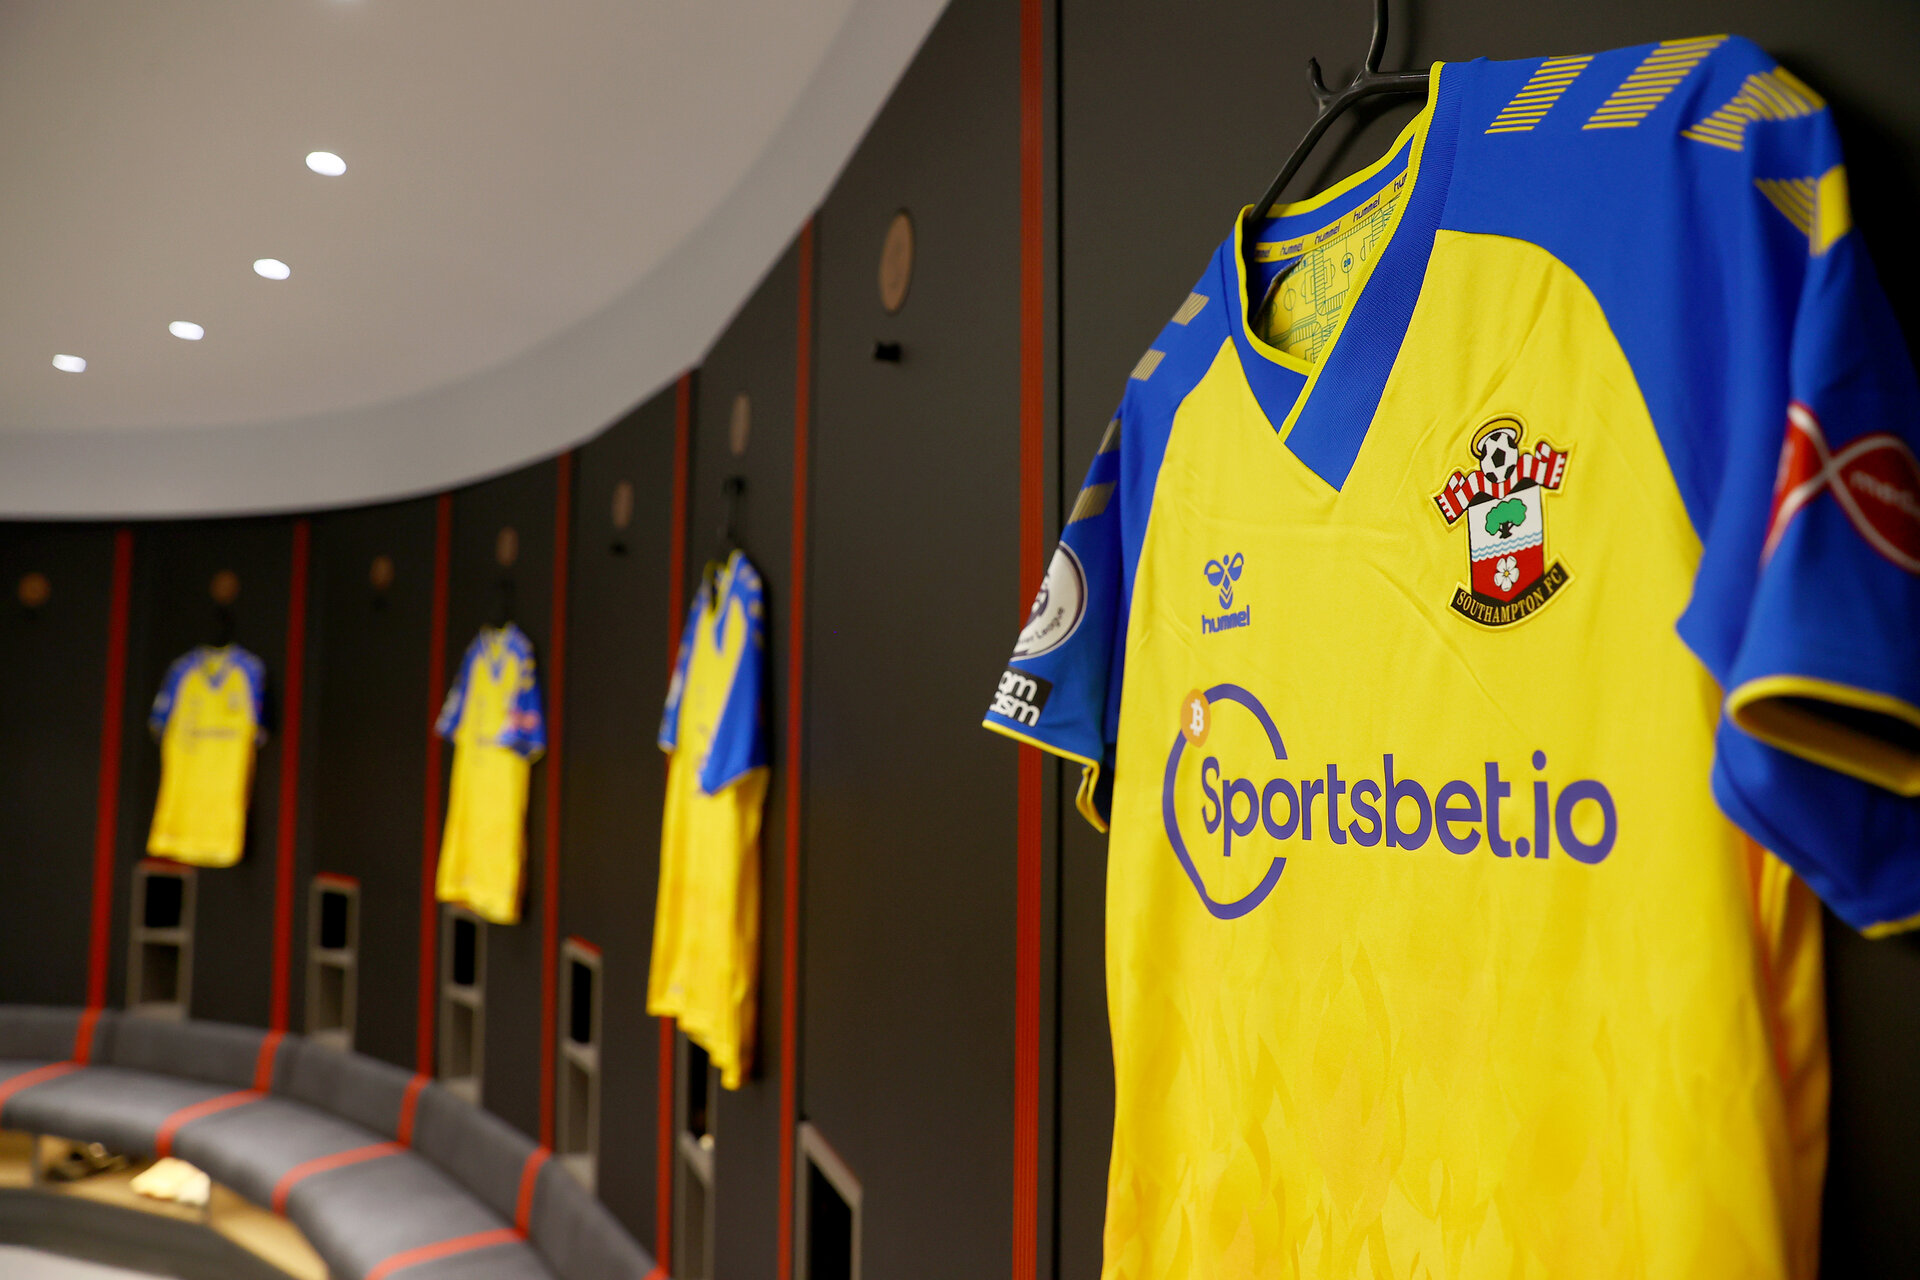 SOUTHAMPTON, ENGLAND - AUGUST 04: The Southampton FC away shirt pictured in the dressing room ahead of the pre season friendly match between Southampton FC and Levante at St Mary's Stadium on August 04, 2021 in Southampton, England. (Photo by Matt Watson/Southampton FC via Getty Images)